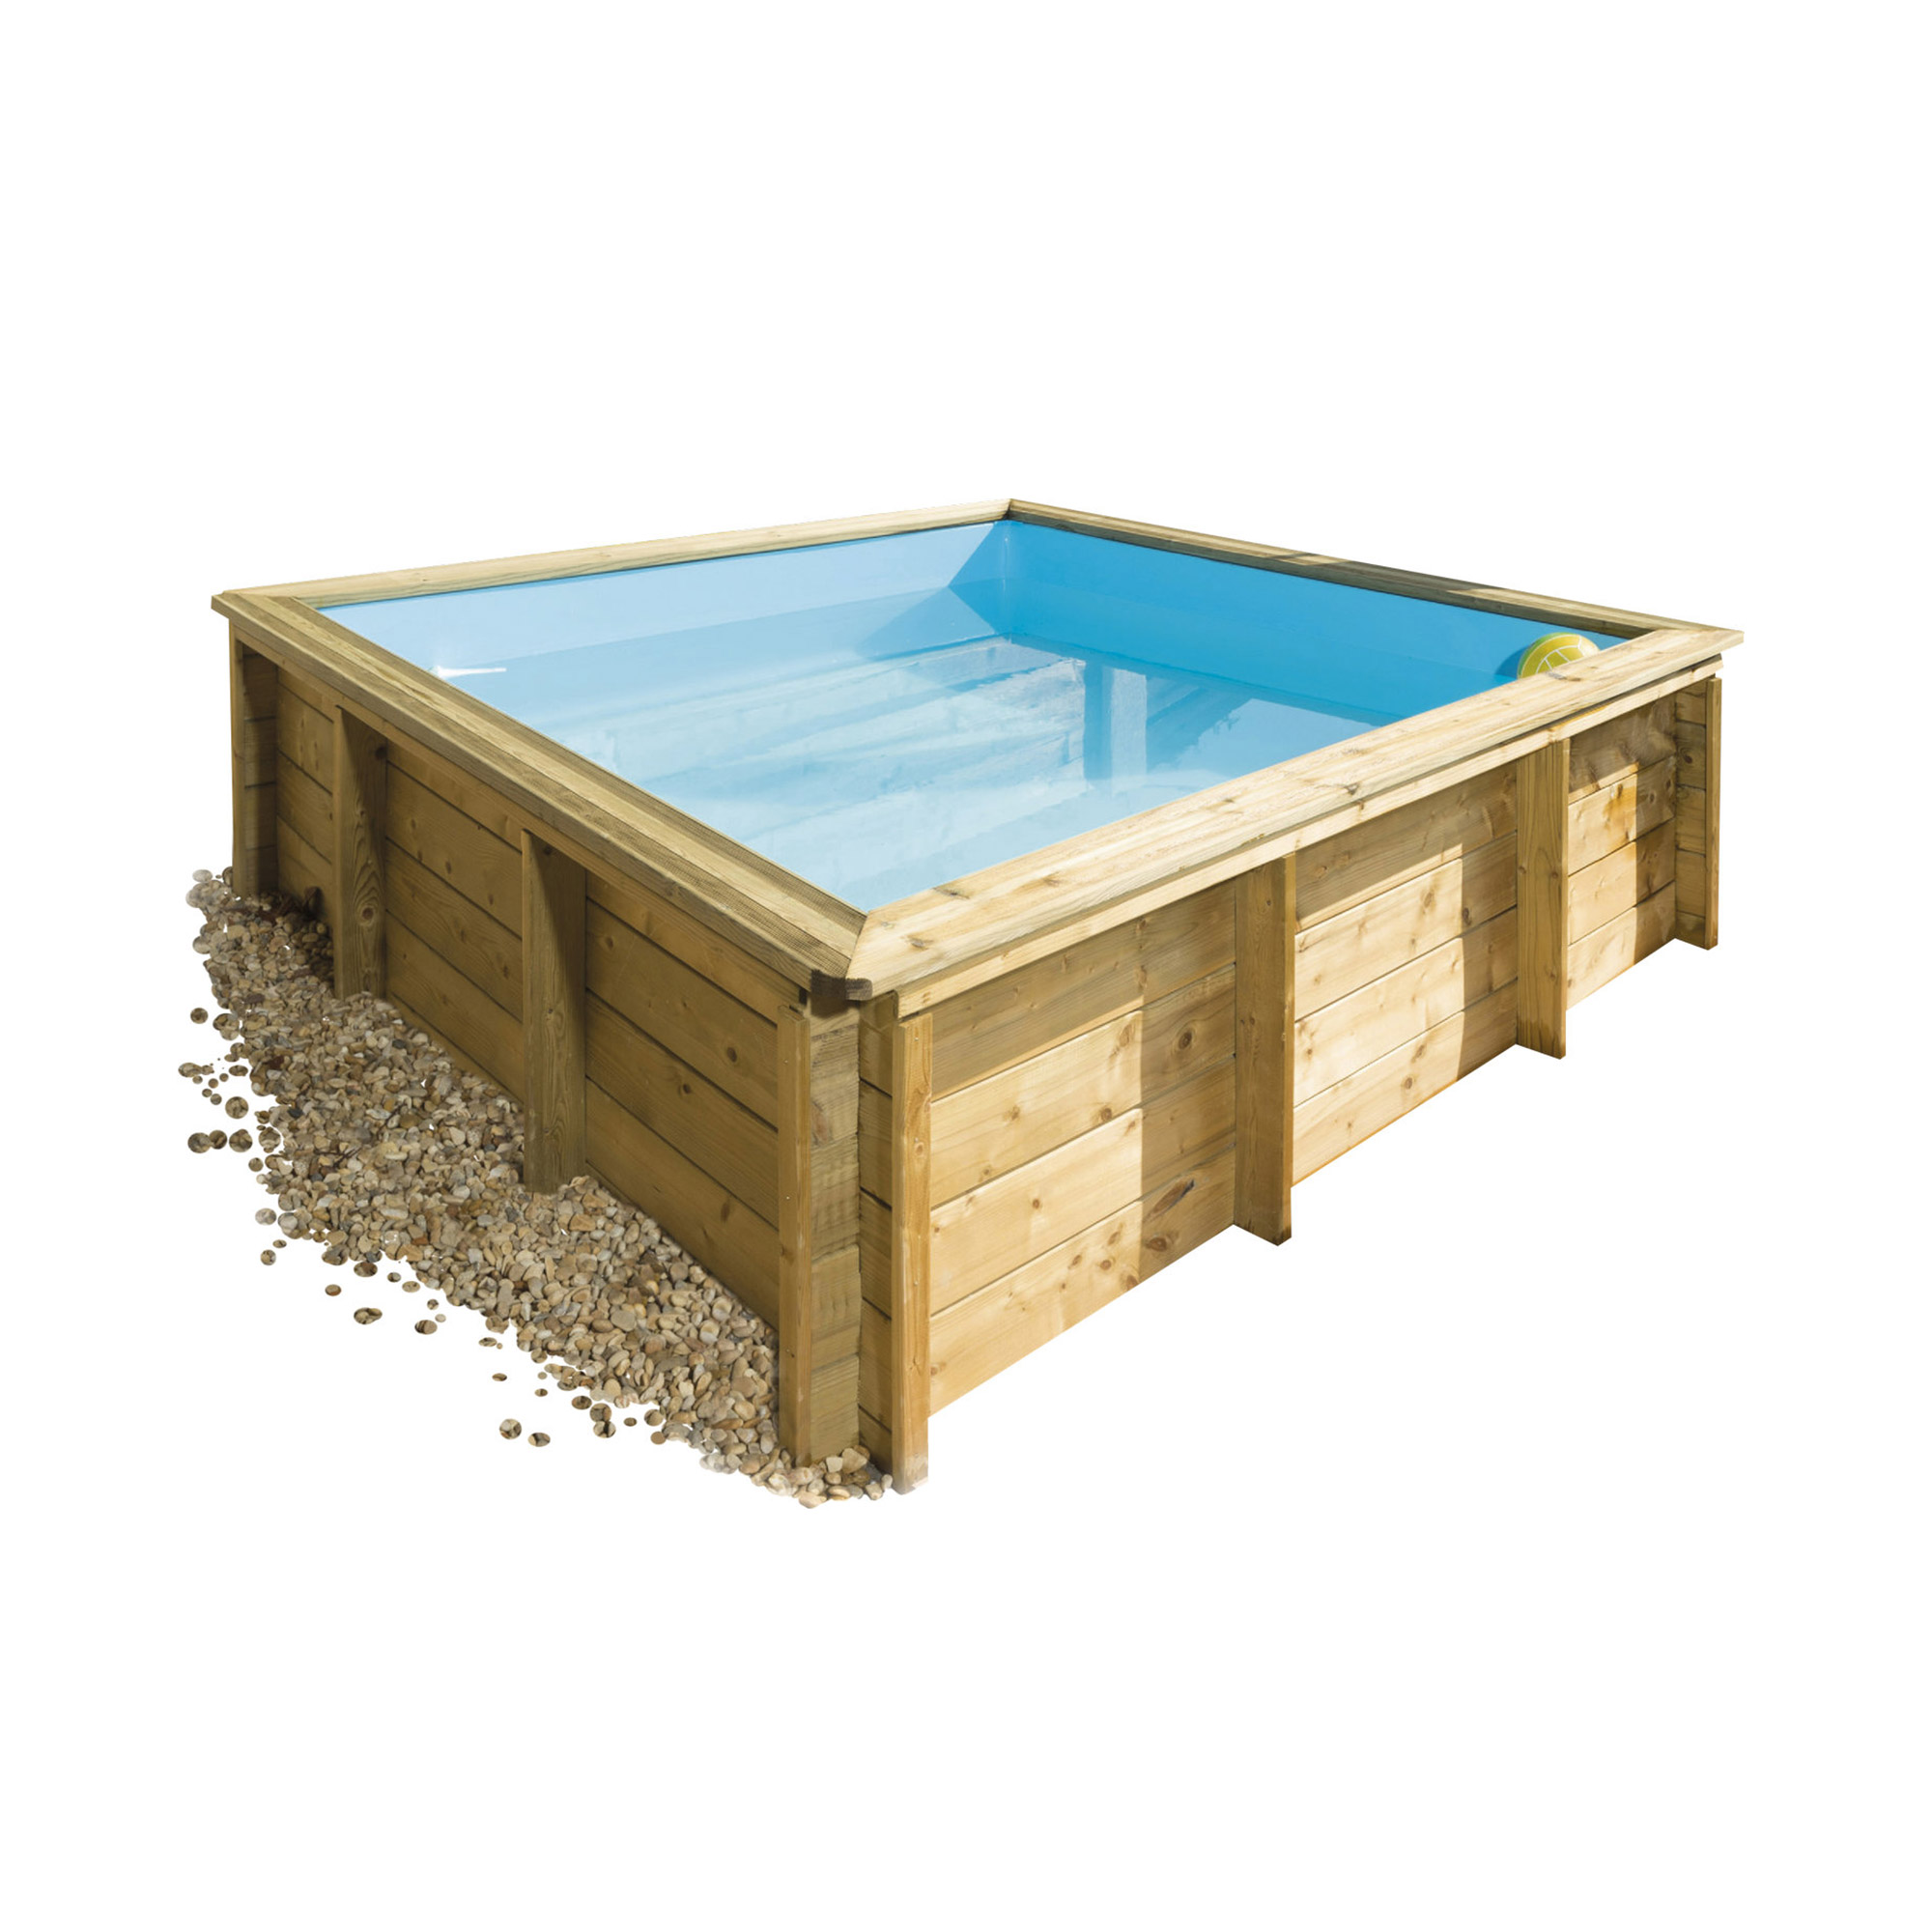 Piscine bois carr e hors sol la tropic junior piscines for Piscine carree hors sol